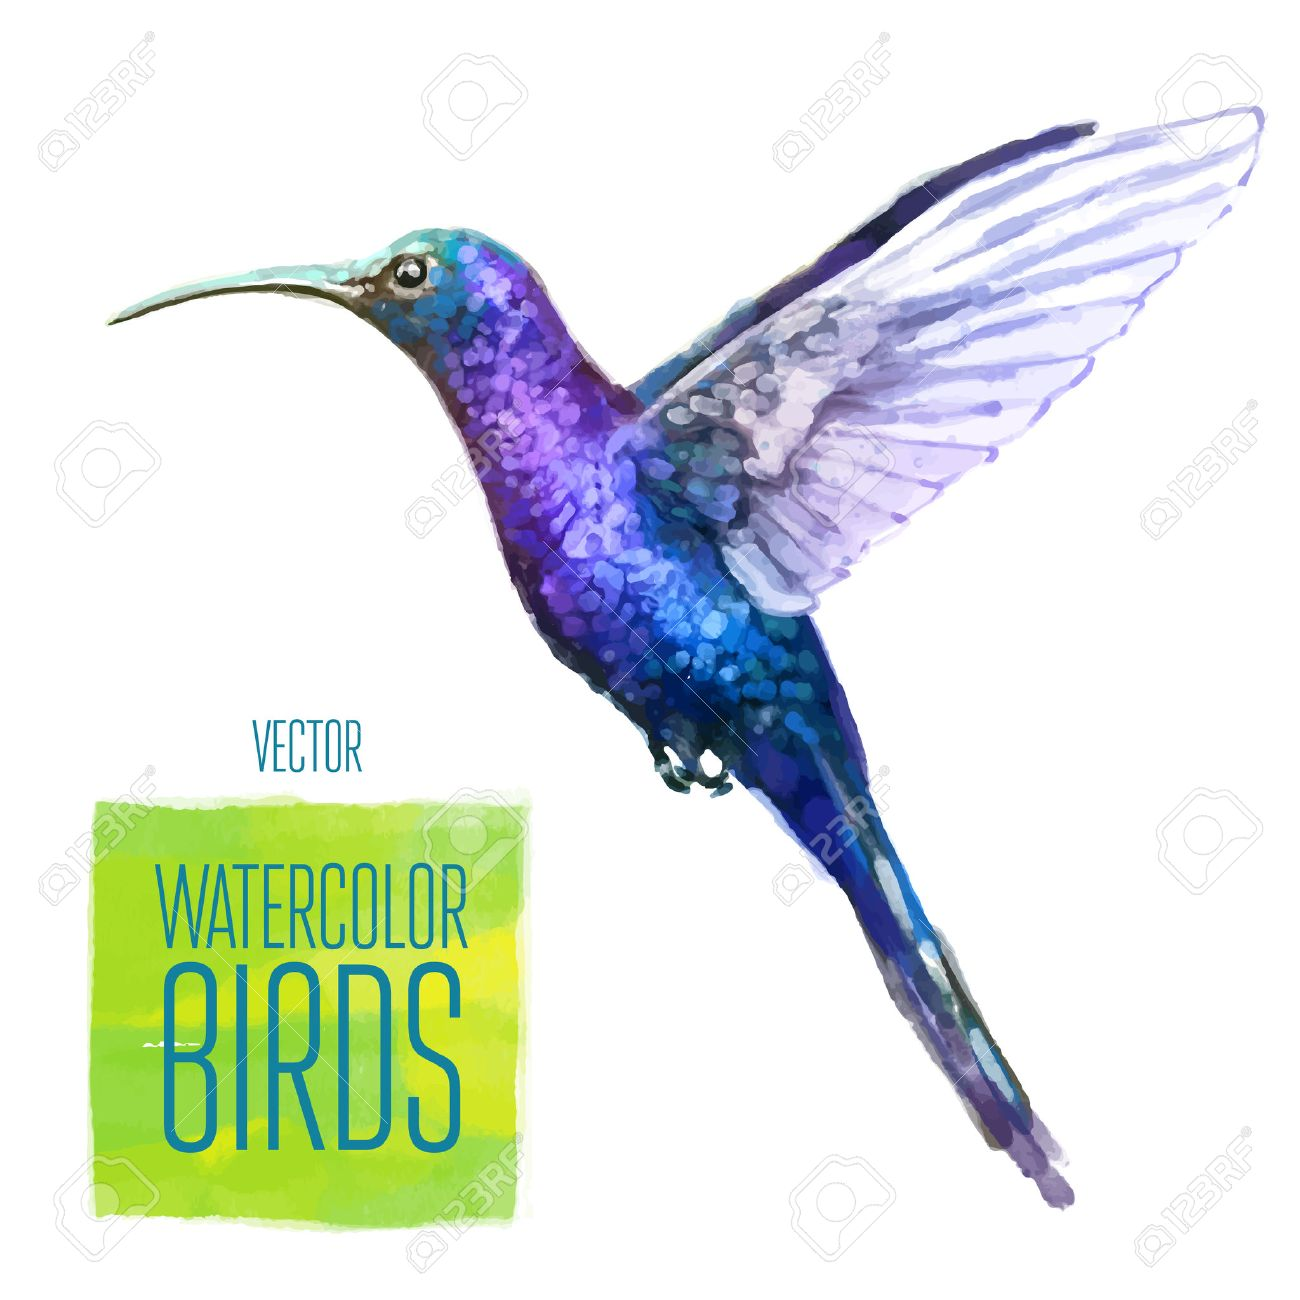 Colibri watercolor bird isolated on white background. Vector illustration - 42774292